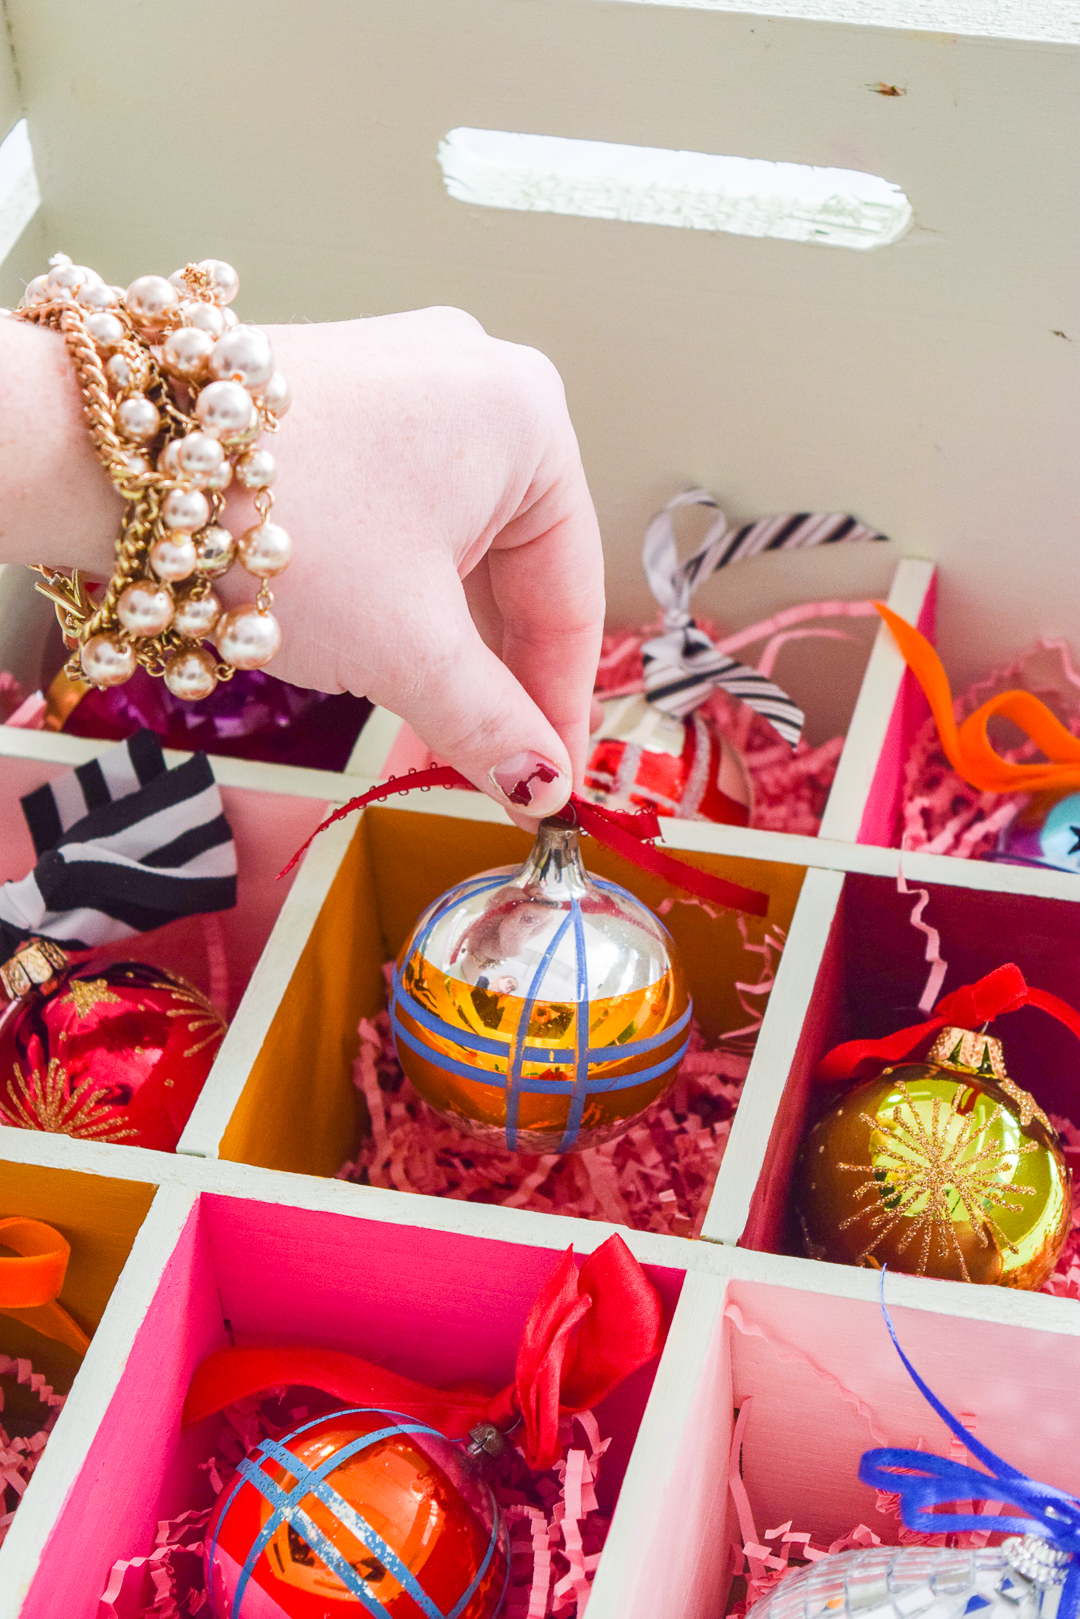 Looking for something that will keep your pieces safe? Try my DIY Colourful Ornament Storage Crate, and none of your ornaments will ever get broken again!